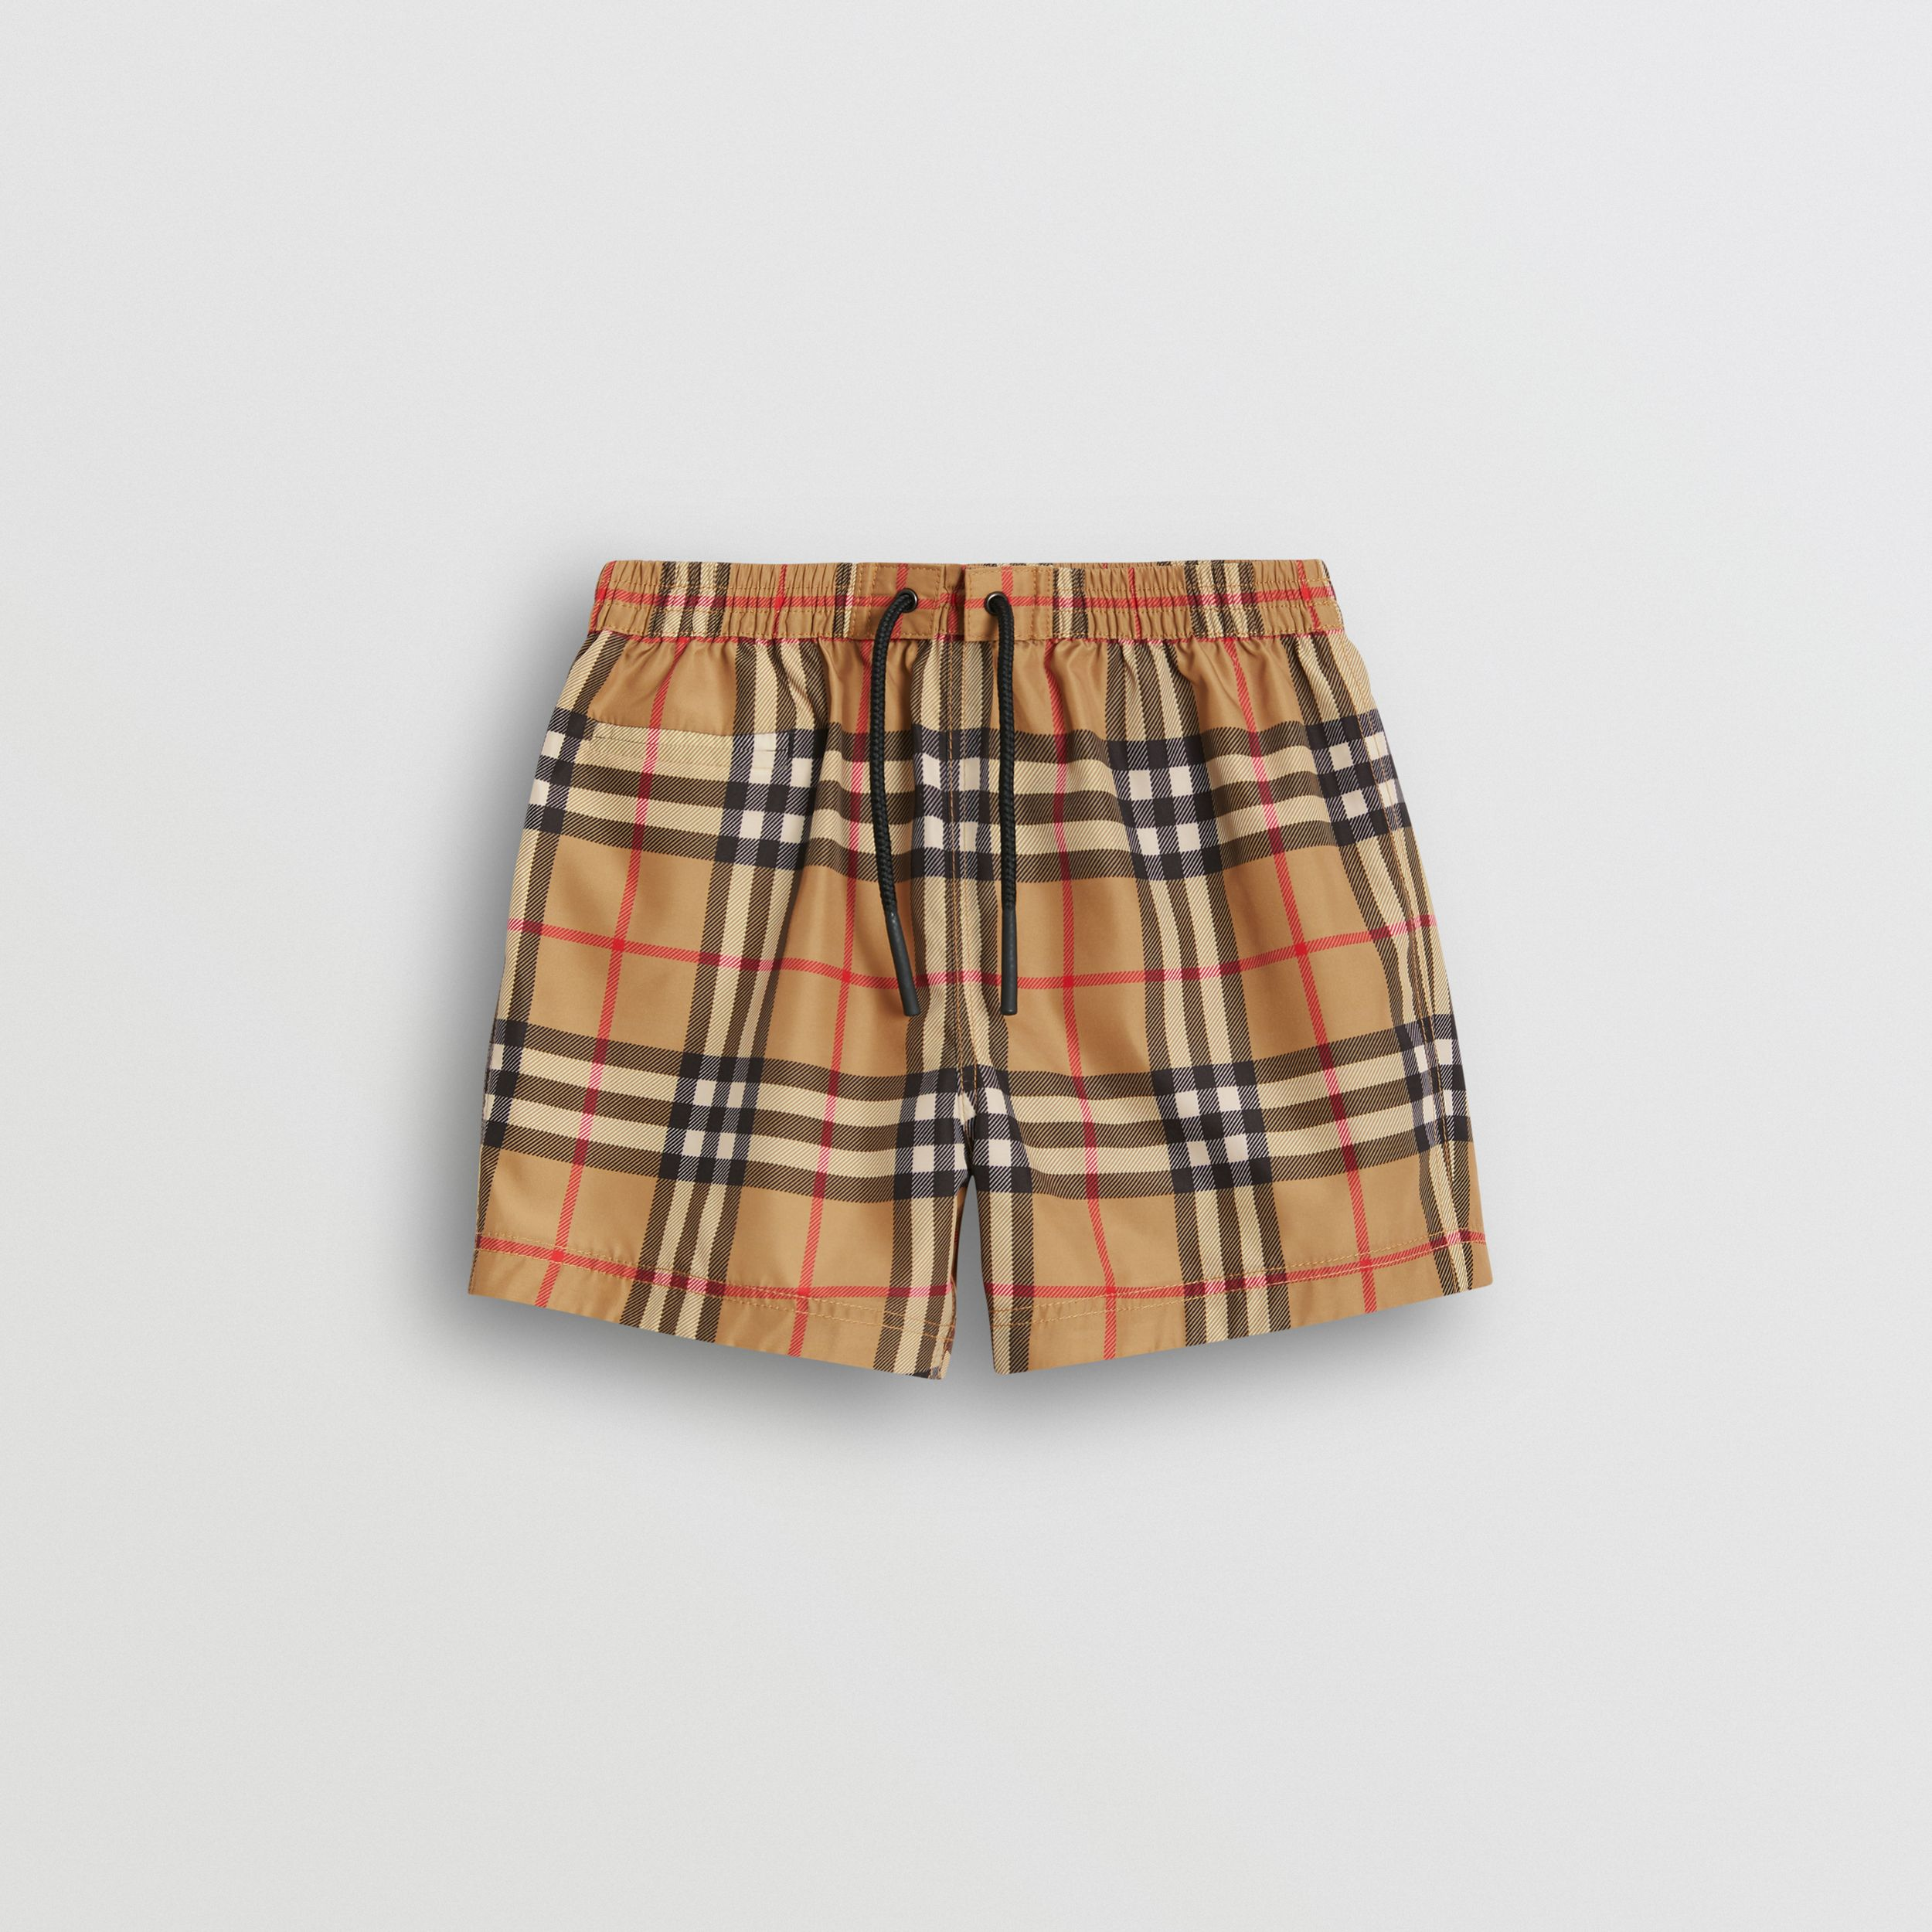 Short de bain à motif check (Jaune Antique) - Enfant | Burberry - 1